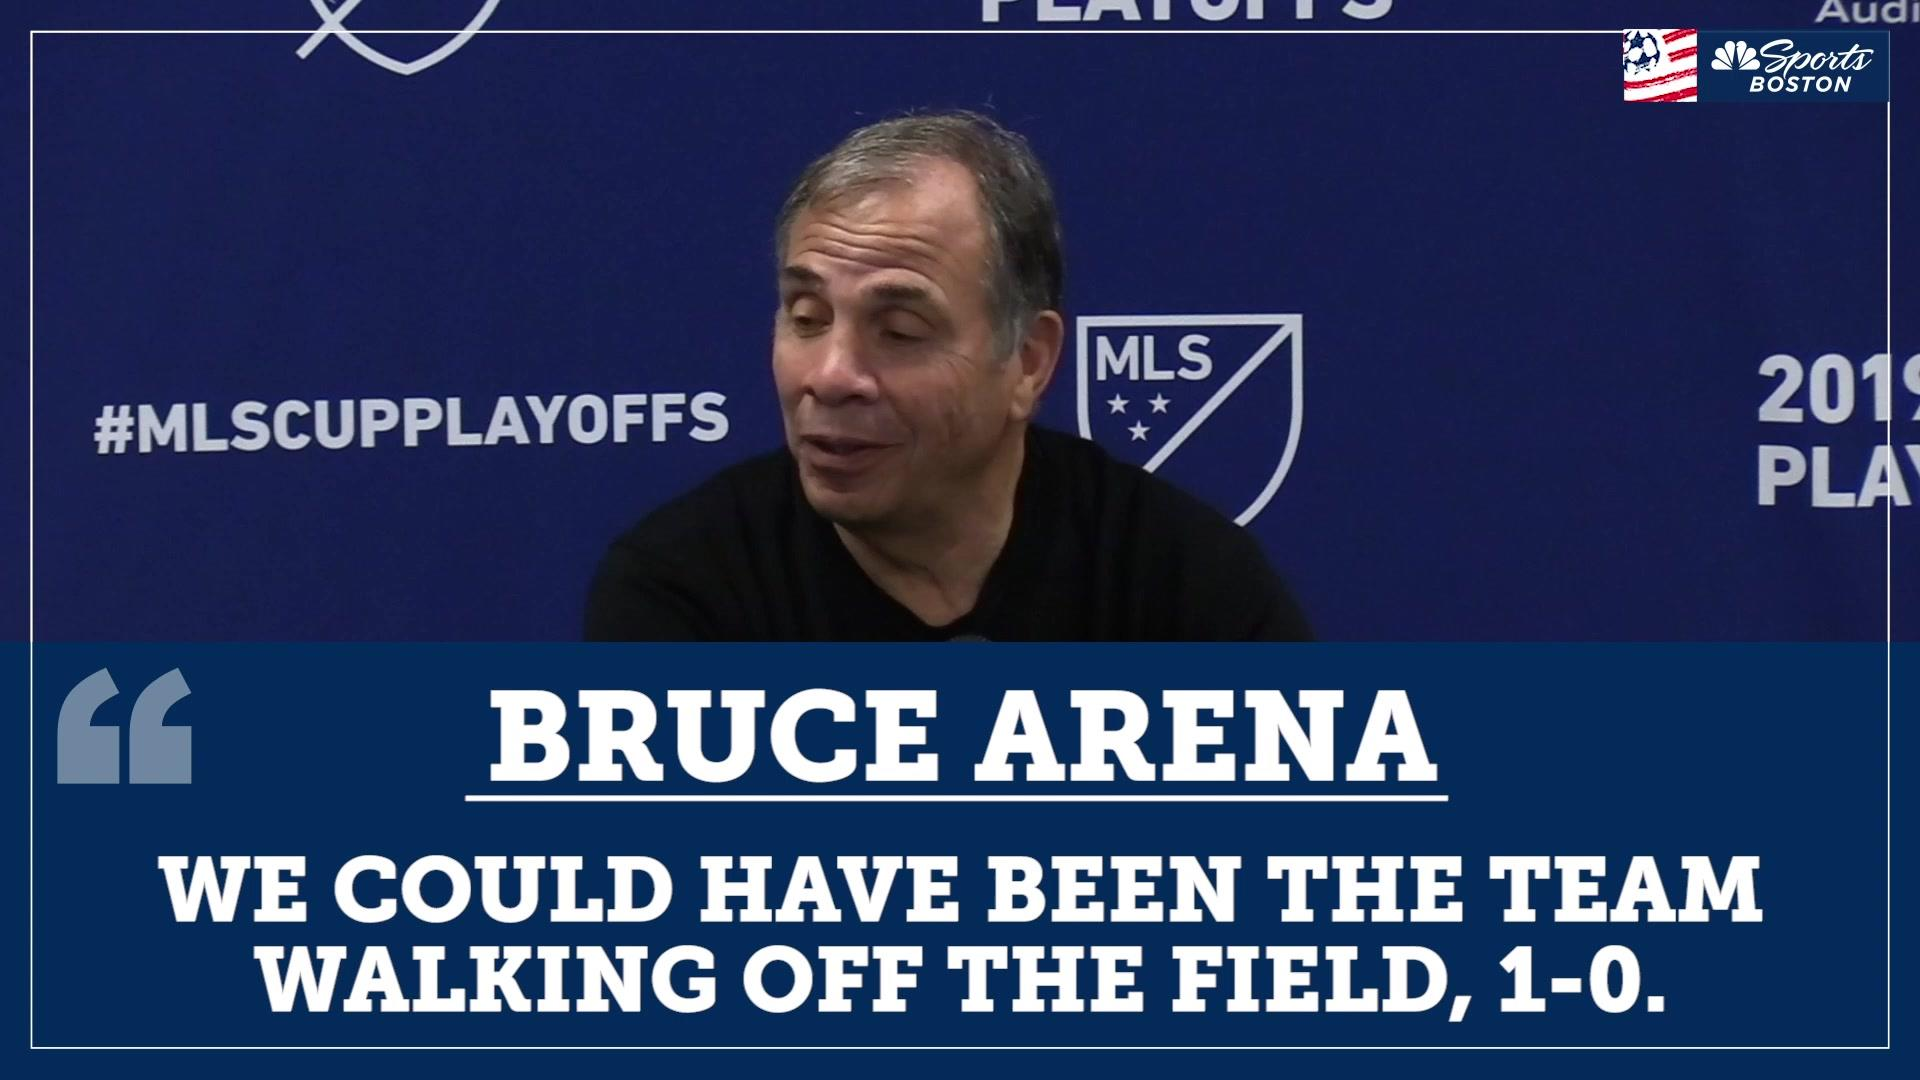 Bruce Arena after Revolution's loss: We expected to go toe-to-toe